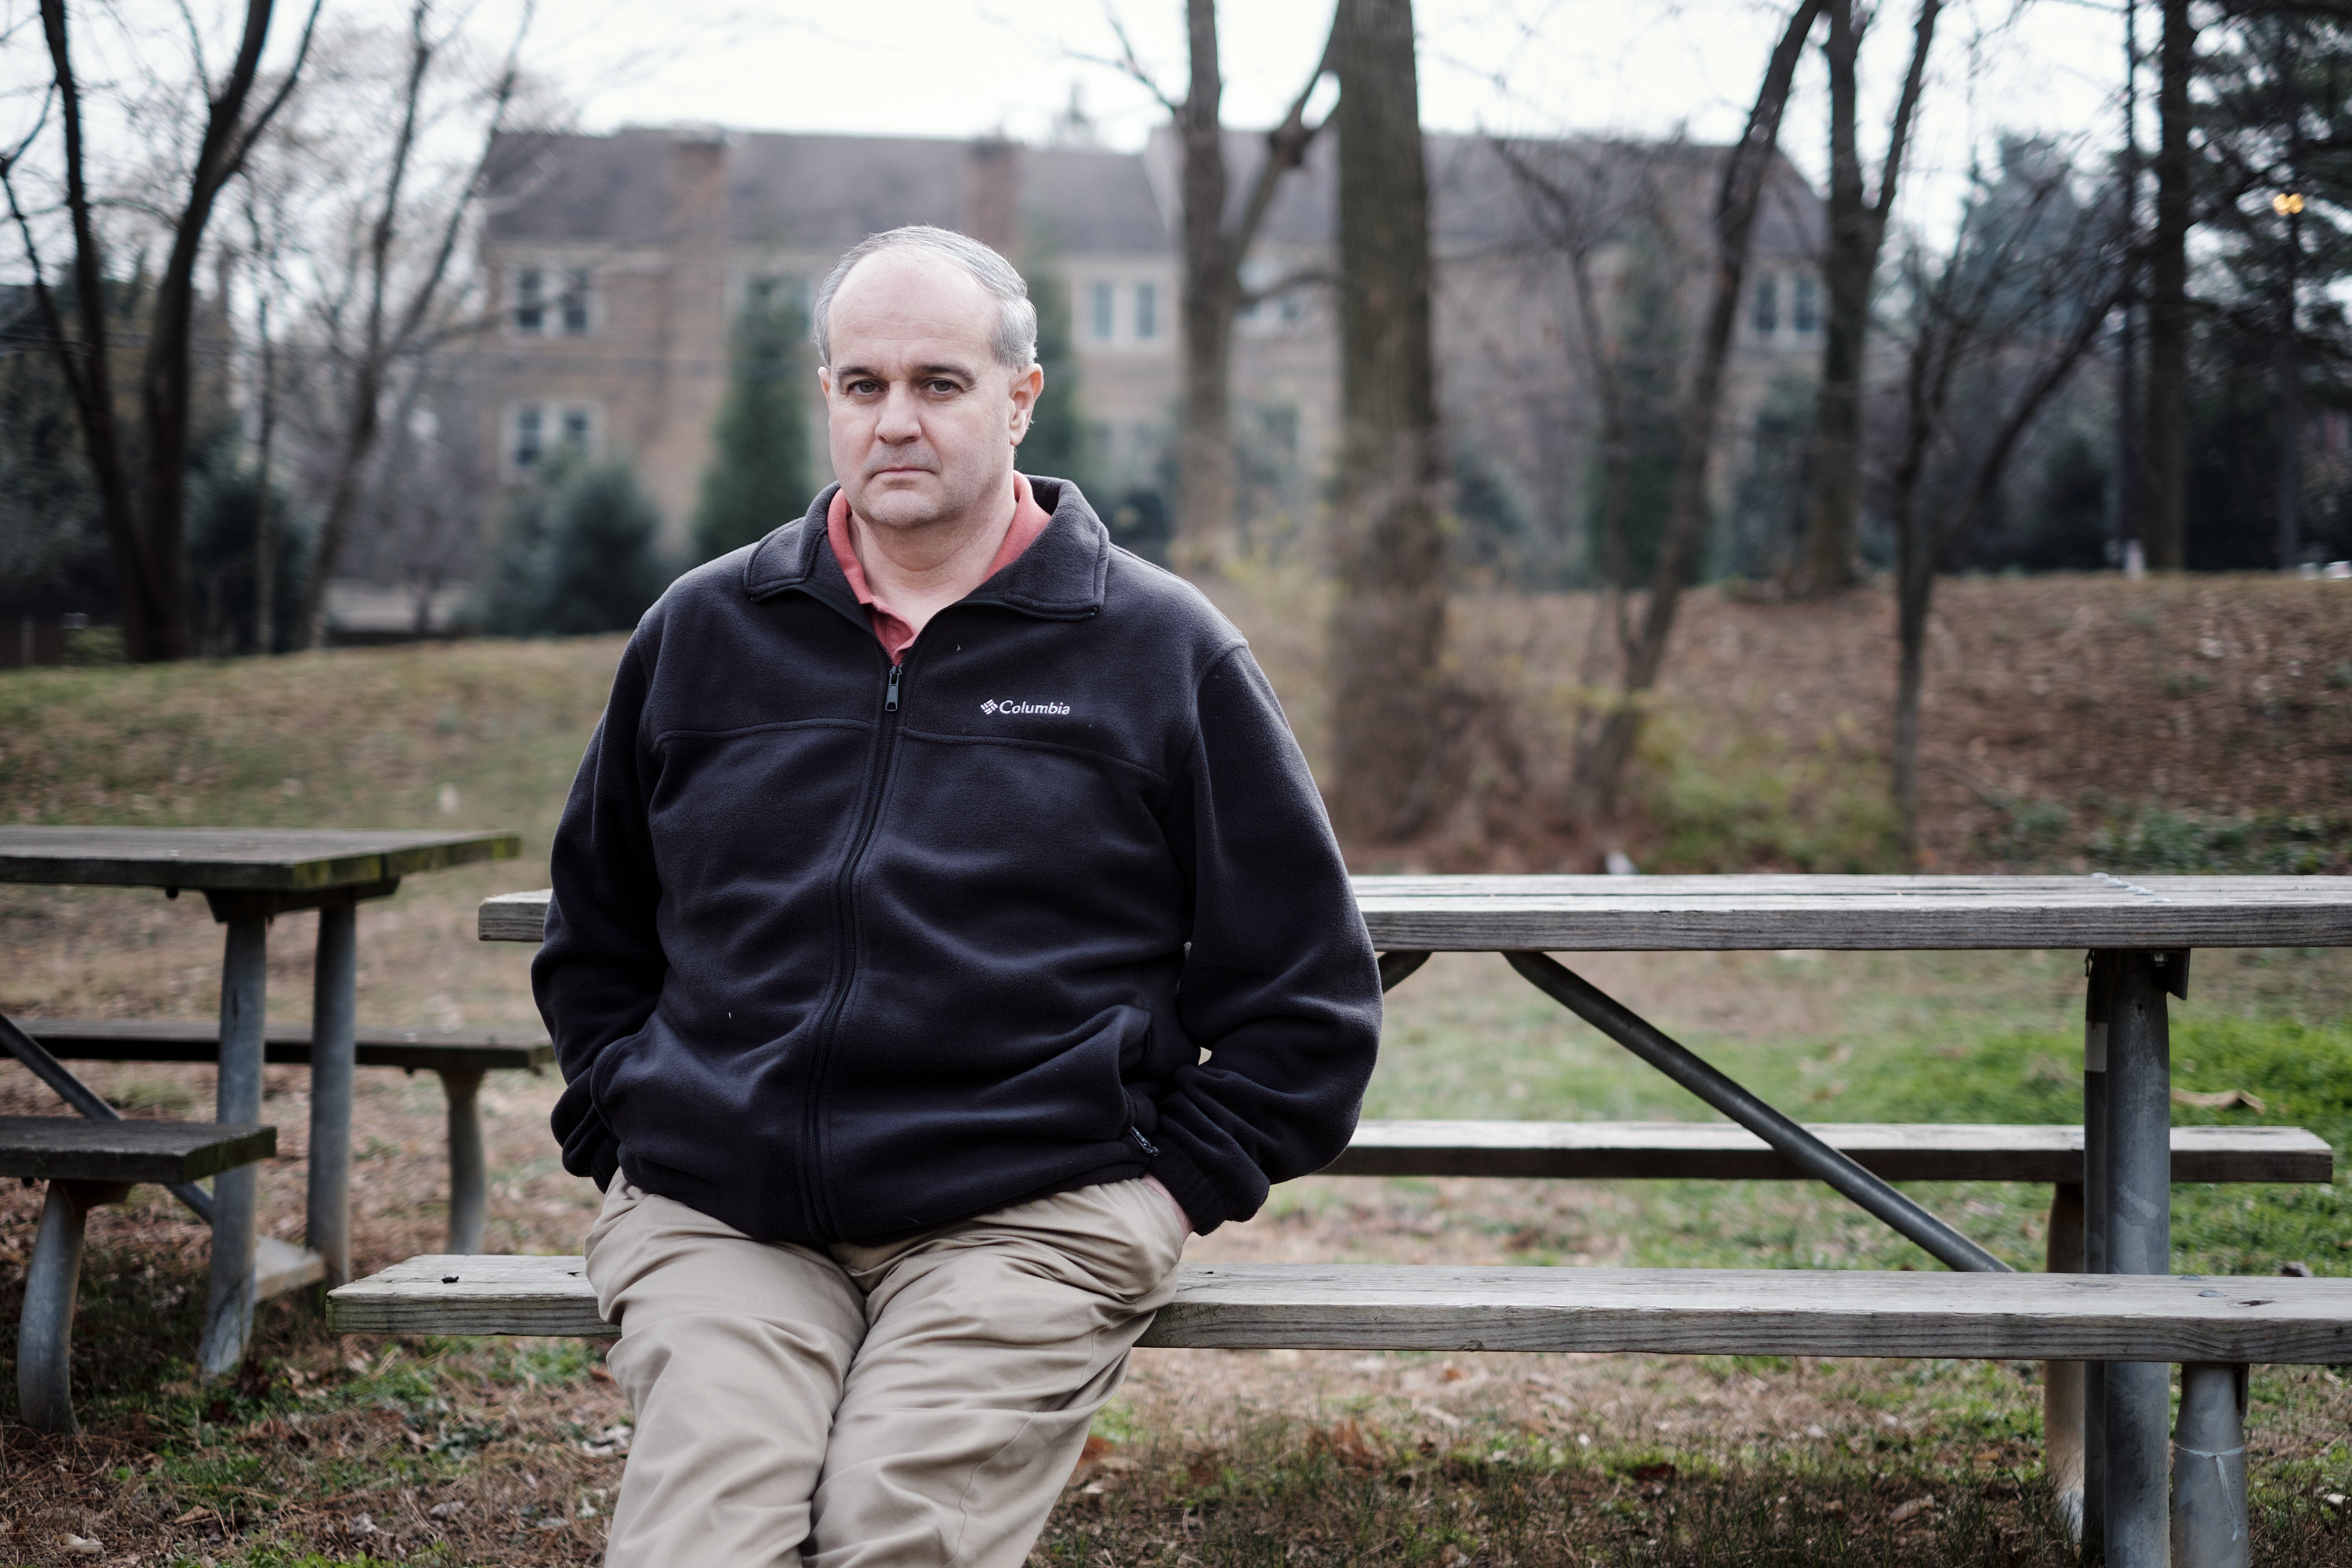 Daryl Johnson, a former analyst at a branch of the Department of Homeland Security that studied the threat posed by anti-government militia groups, near Rockville, Md., Jan. 7, 2016. Johnson says that too little is being done to combat a rising domestic terrorism threat from right-wing extremists. (T.J. Kirkpatrick/The New York Times)